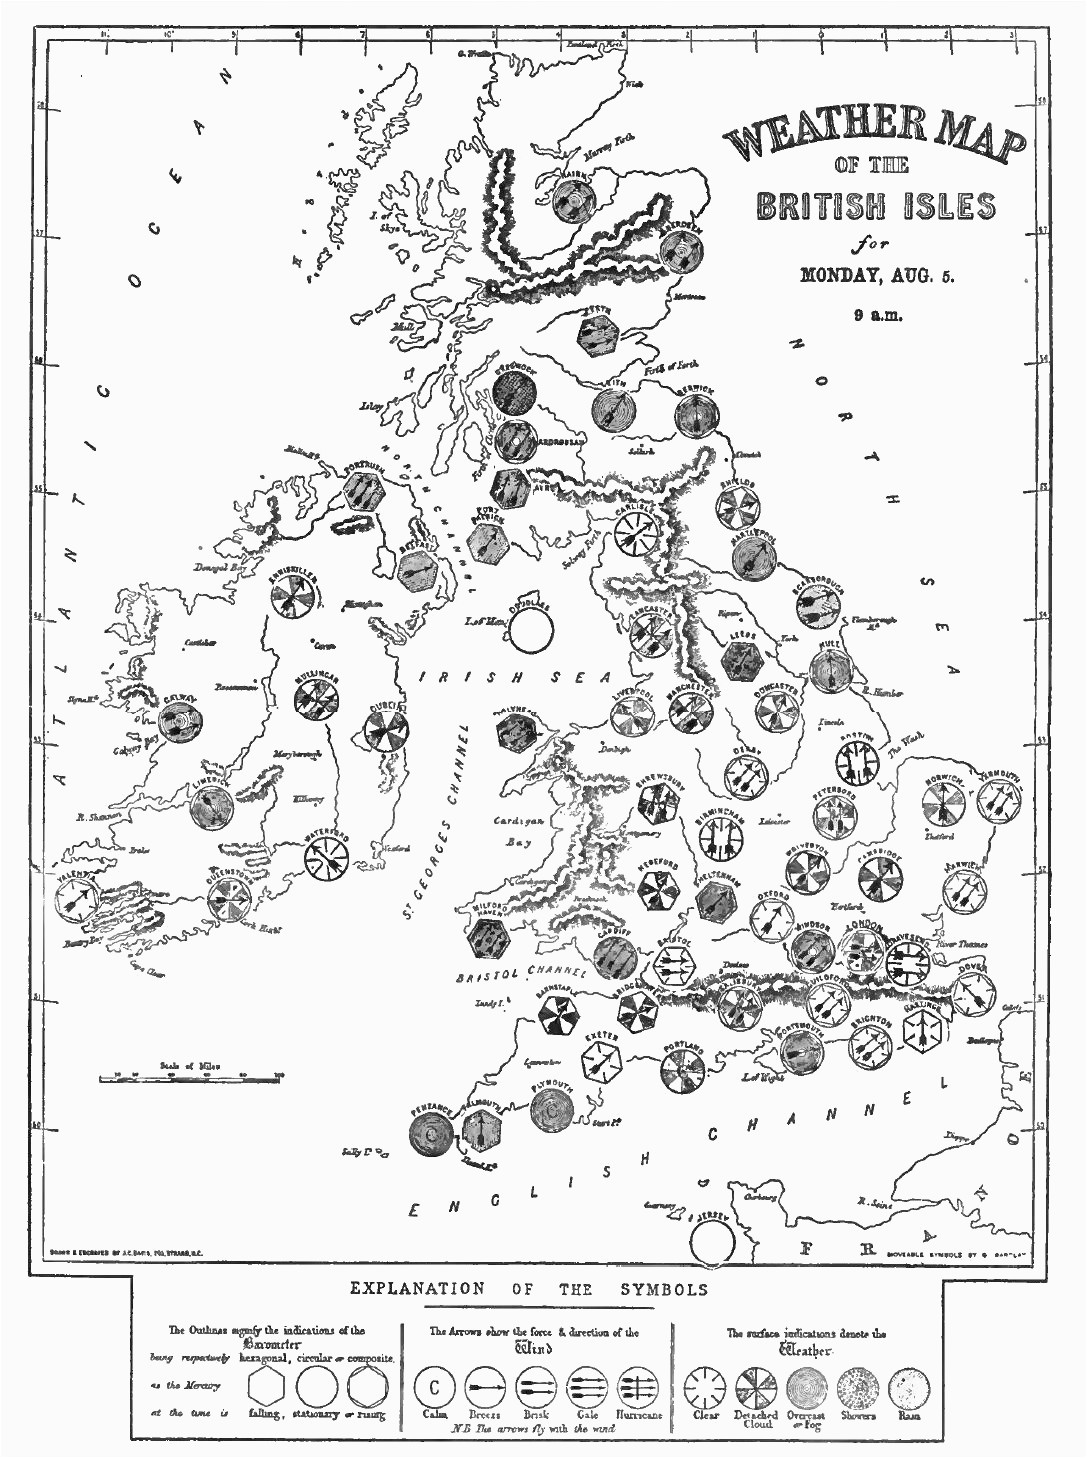 Weather Map Of England Distant Writing the Companies and the Weather